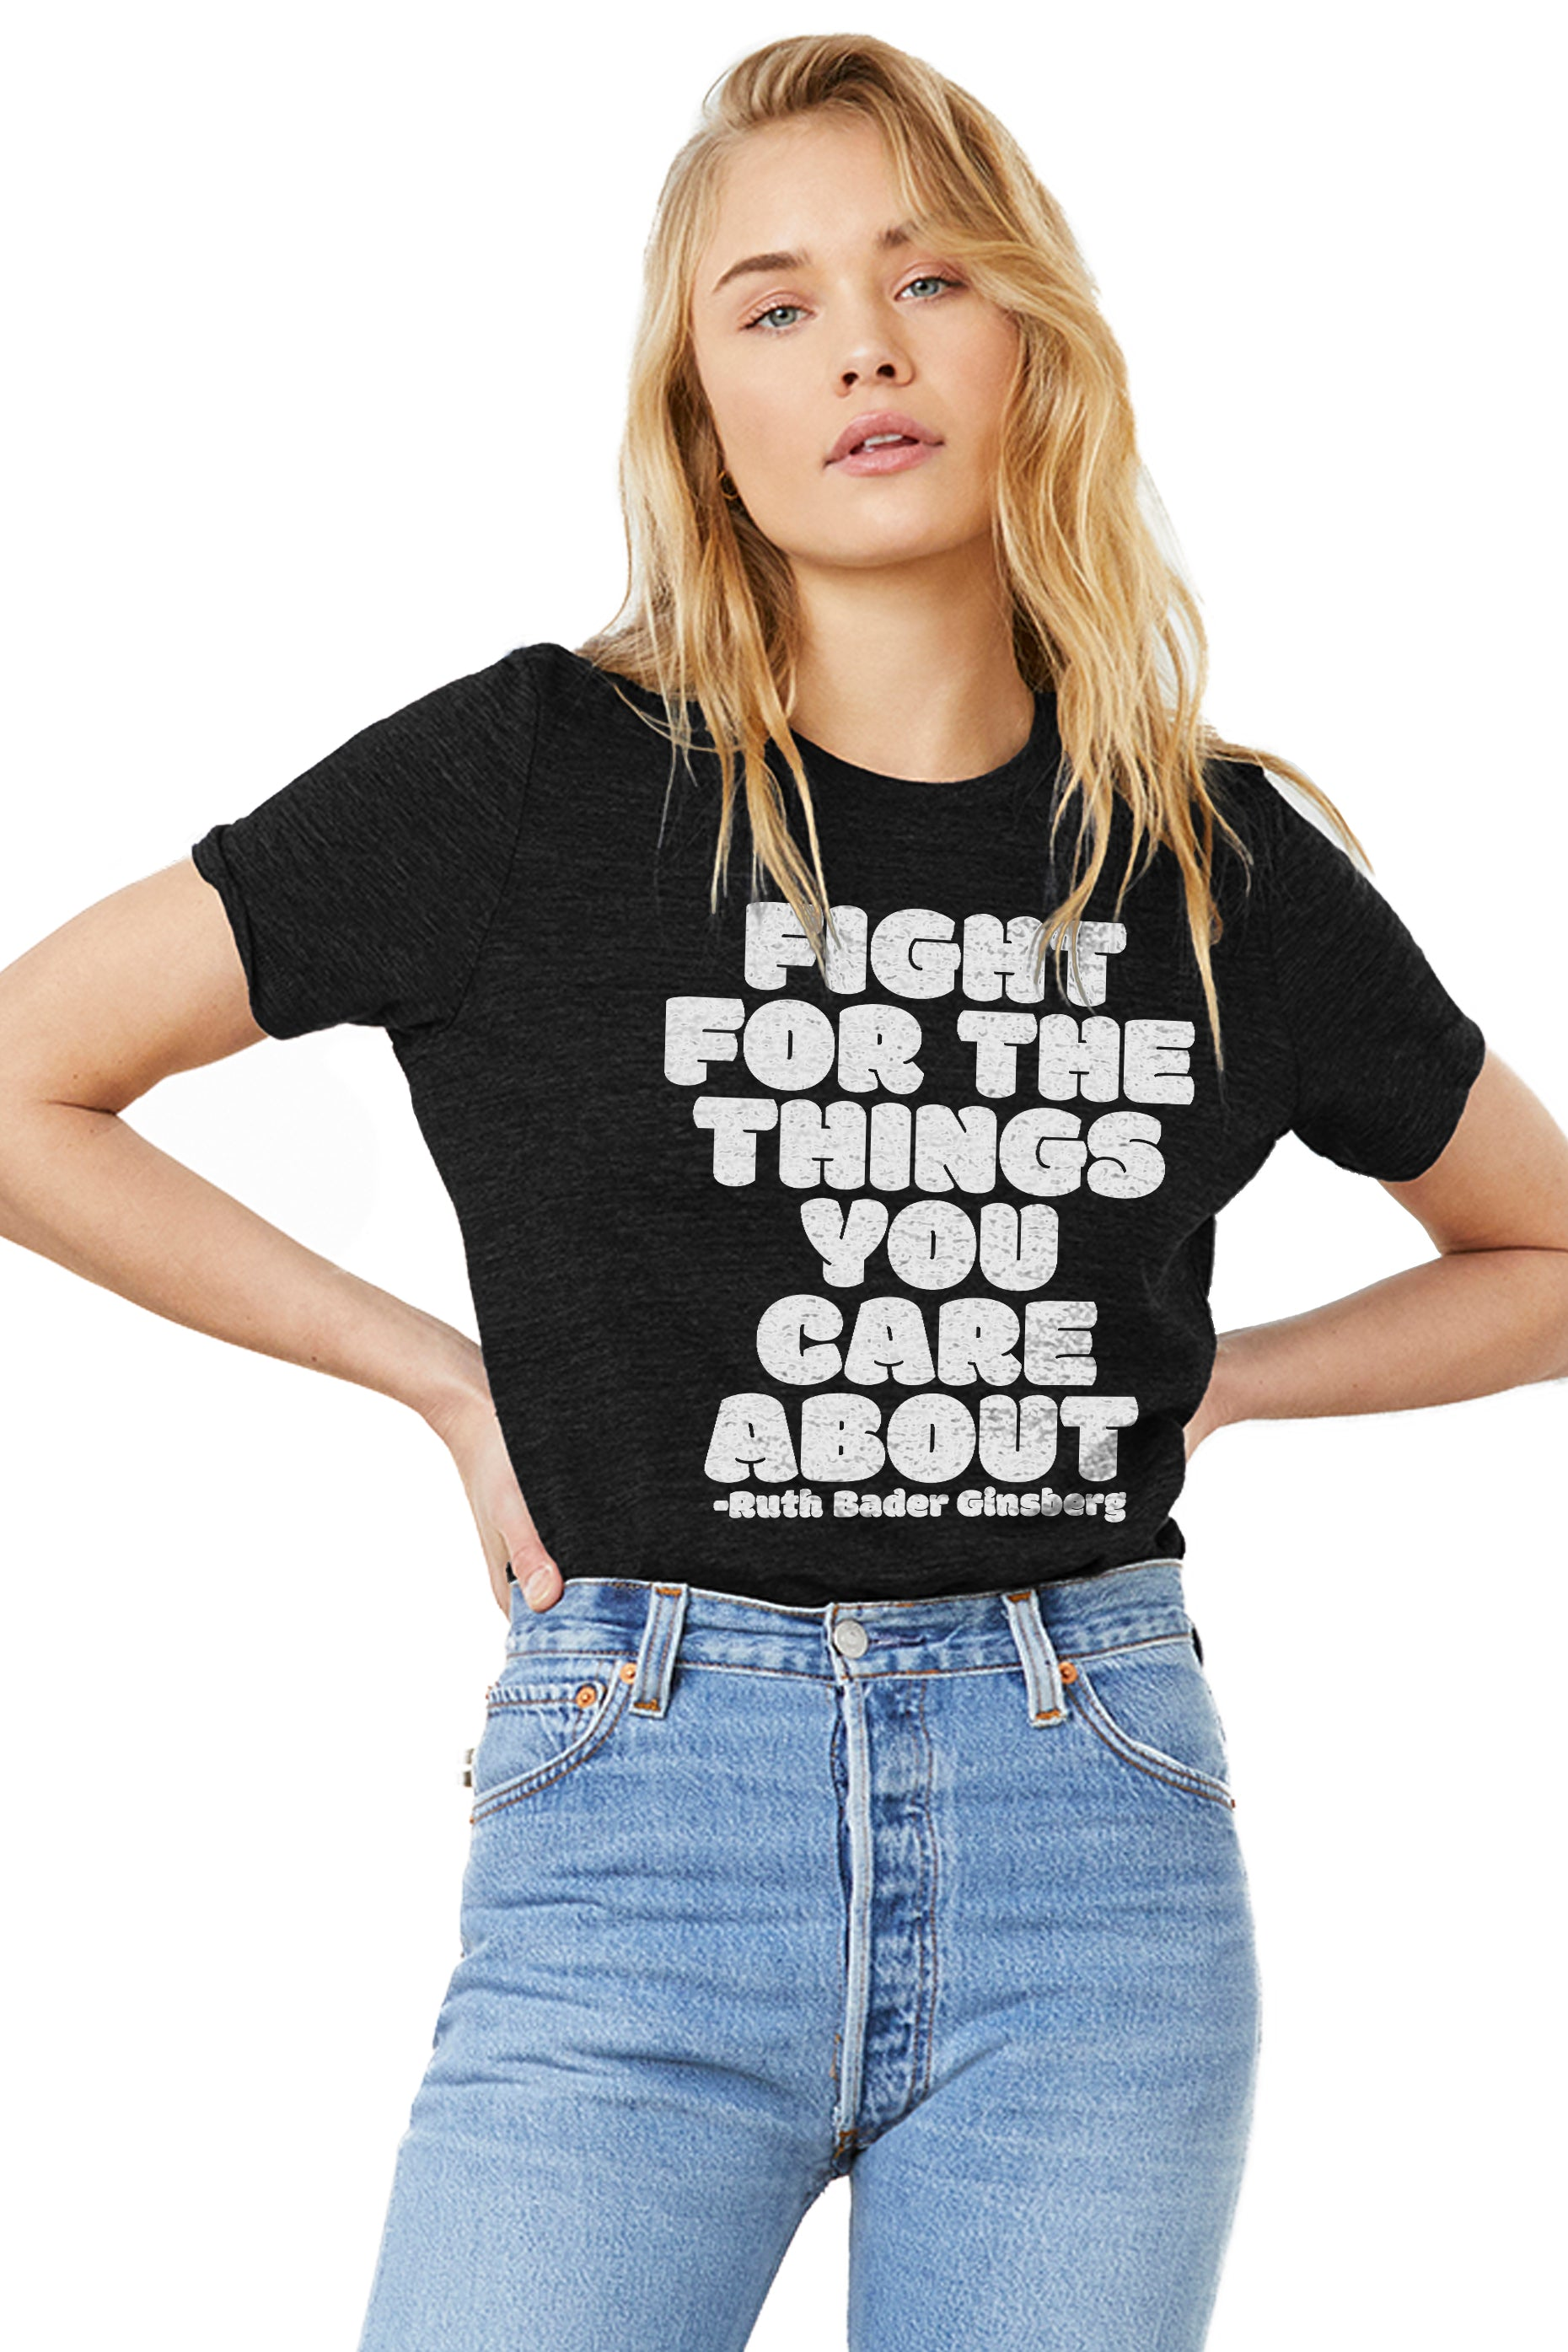 RBG Fight For The Things You Care About Unisex Premium Adult Crewneck Tee